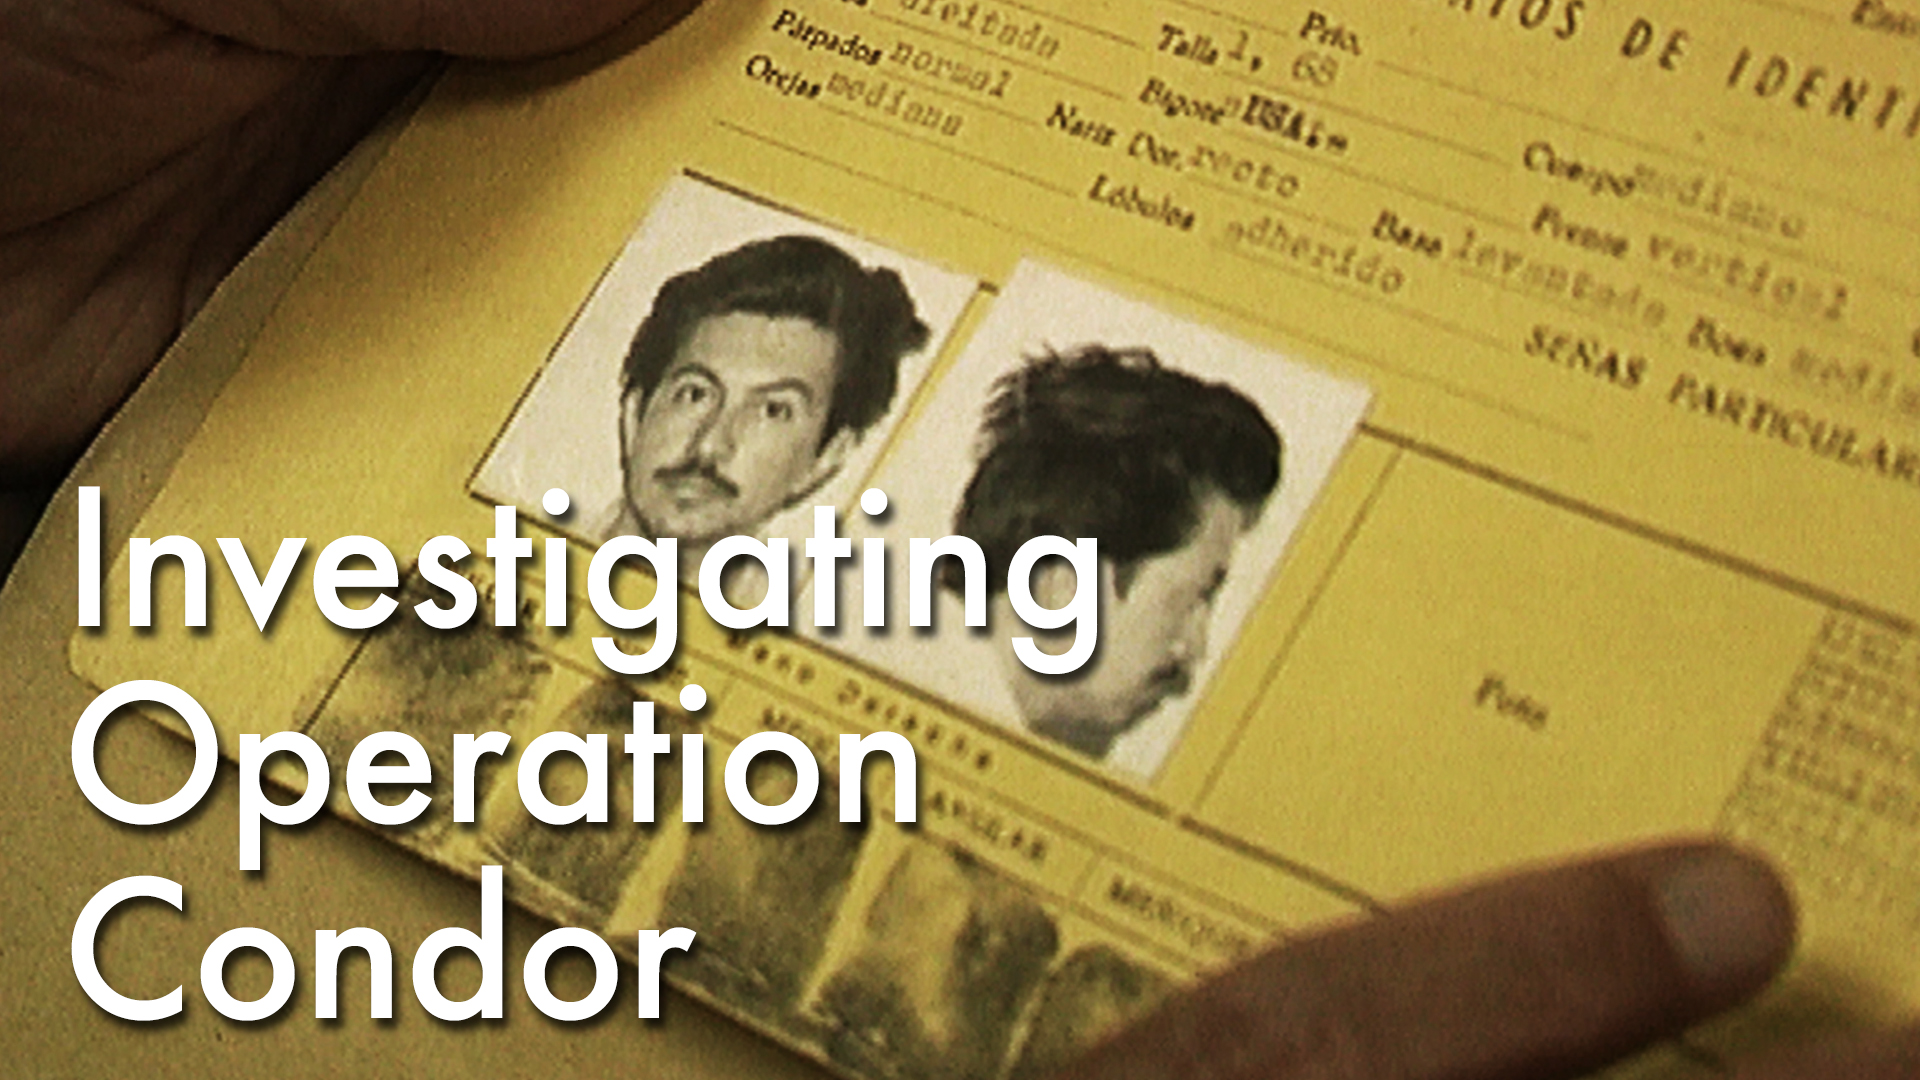 Investigating Operation Condor